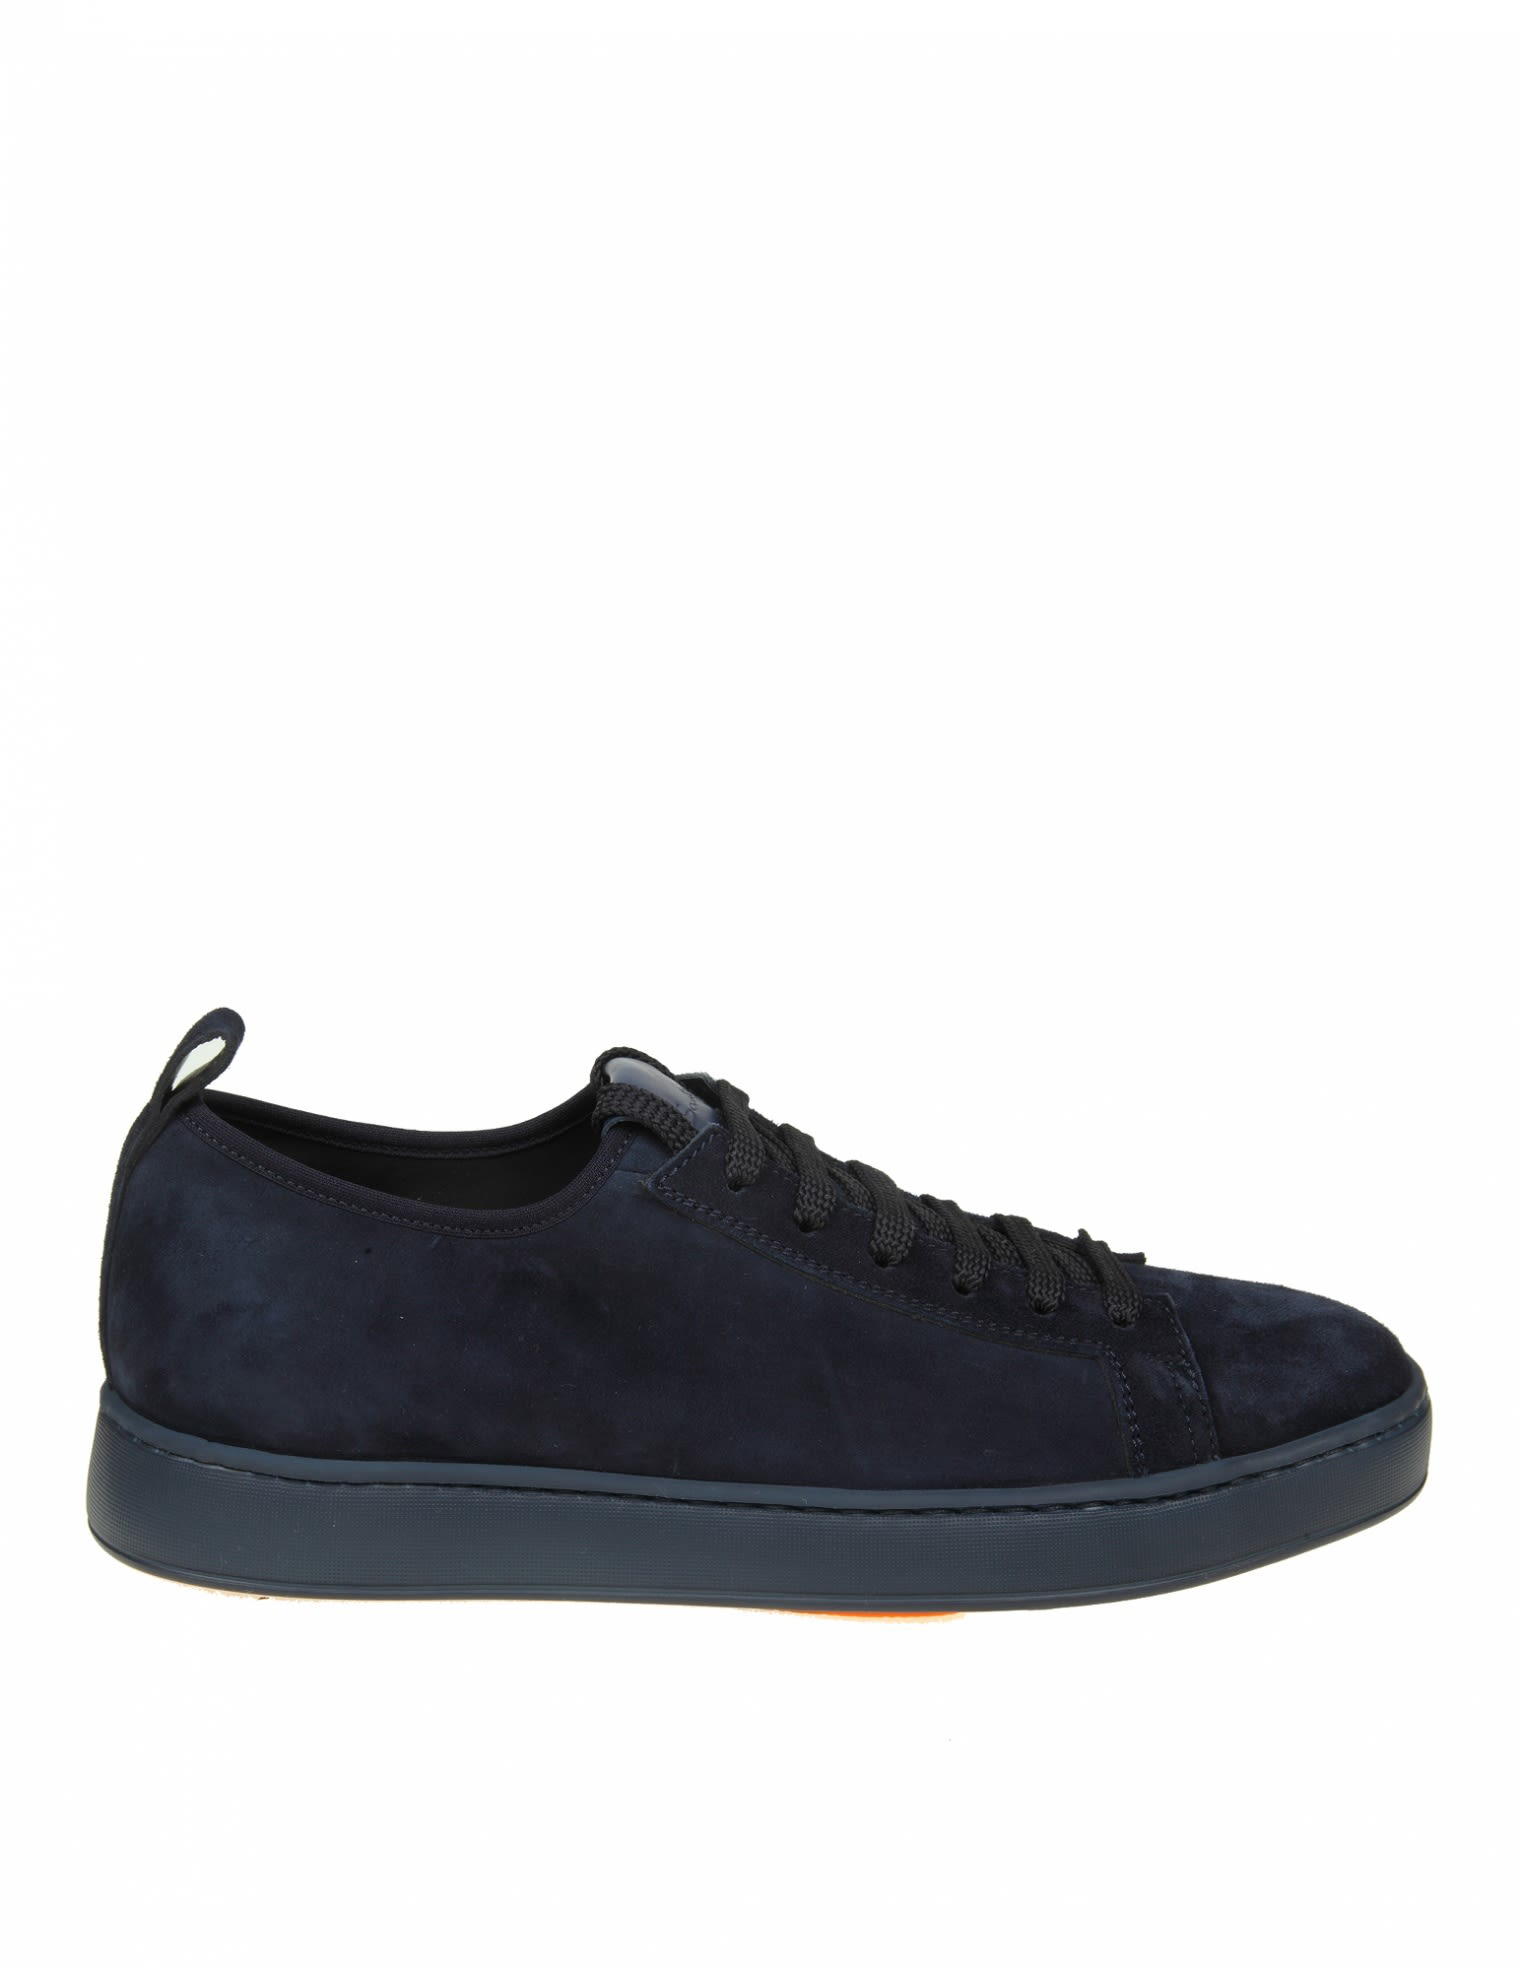 SANTONI SNEAKERS IN BLUE SUEDE